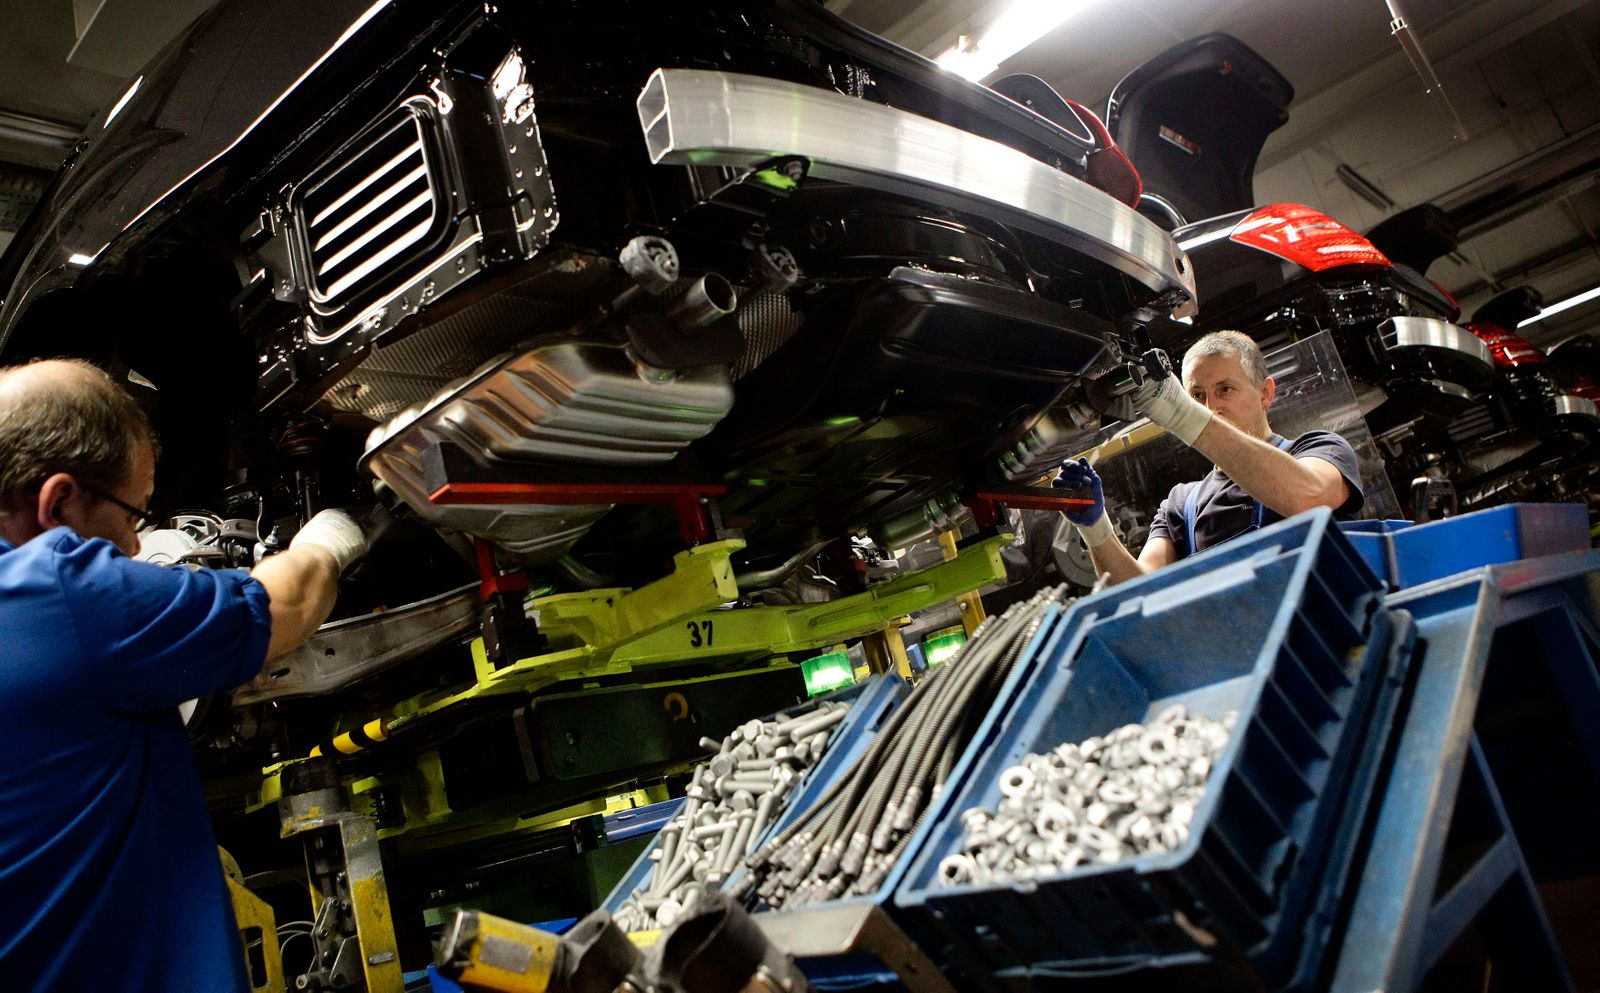 Employees of German car manufacturer Mercedes Benz work on a Mercedes S-class limousine during a photo opportunity at the Mercedes plant in Sindelfingen near Stuttgart